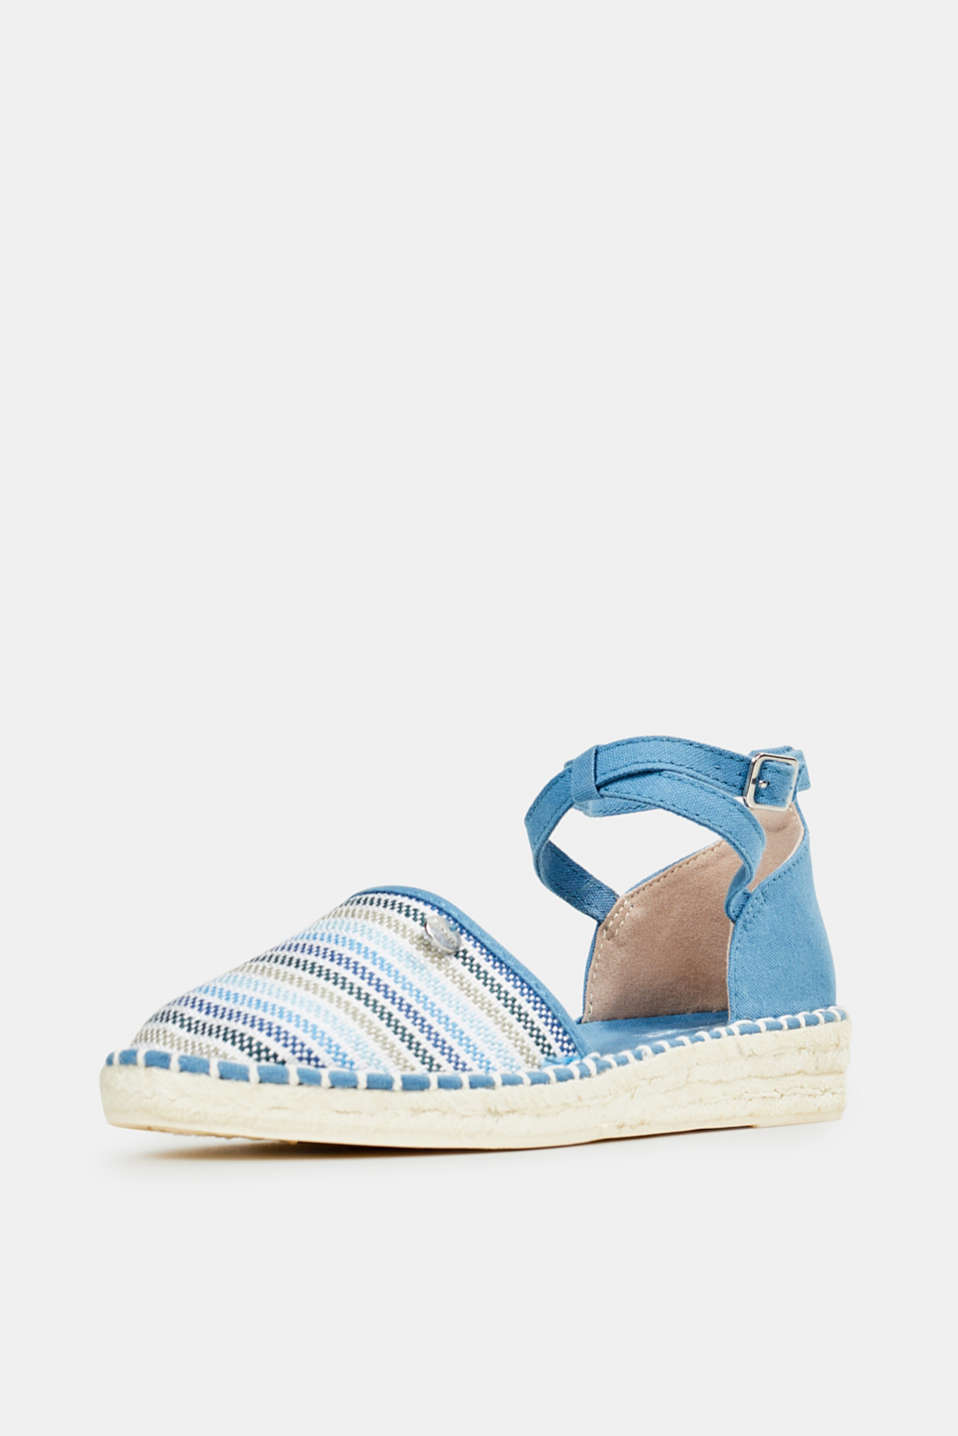 Espadrille sandals with stripes, GREY BLUE, detail image number 2